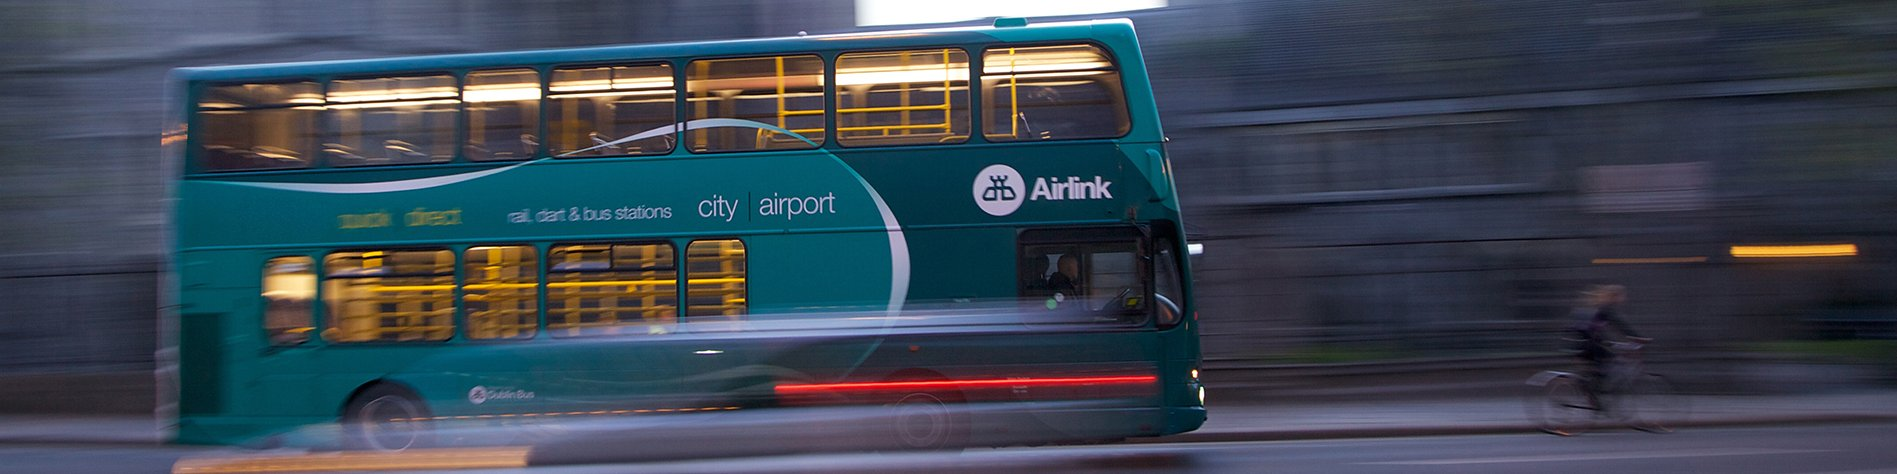 Airlink bus from the airport to Dublin city center